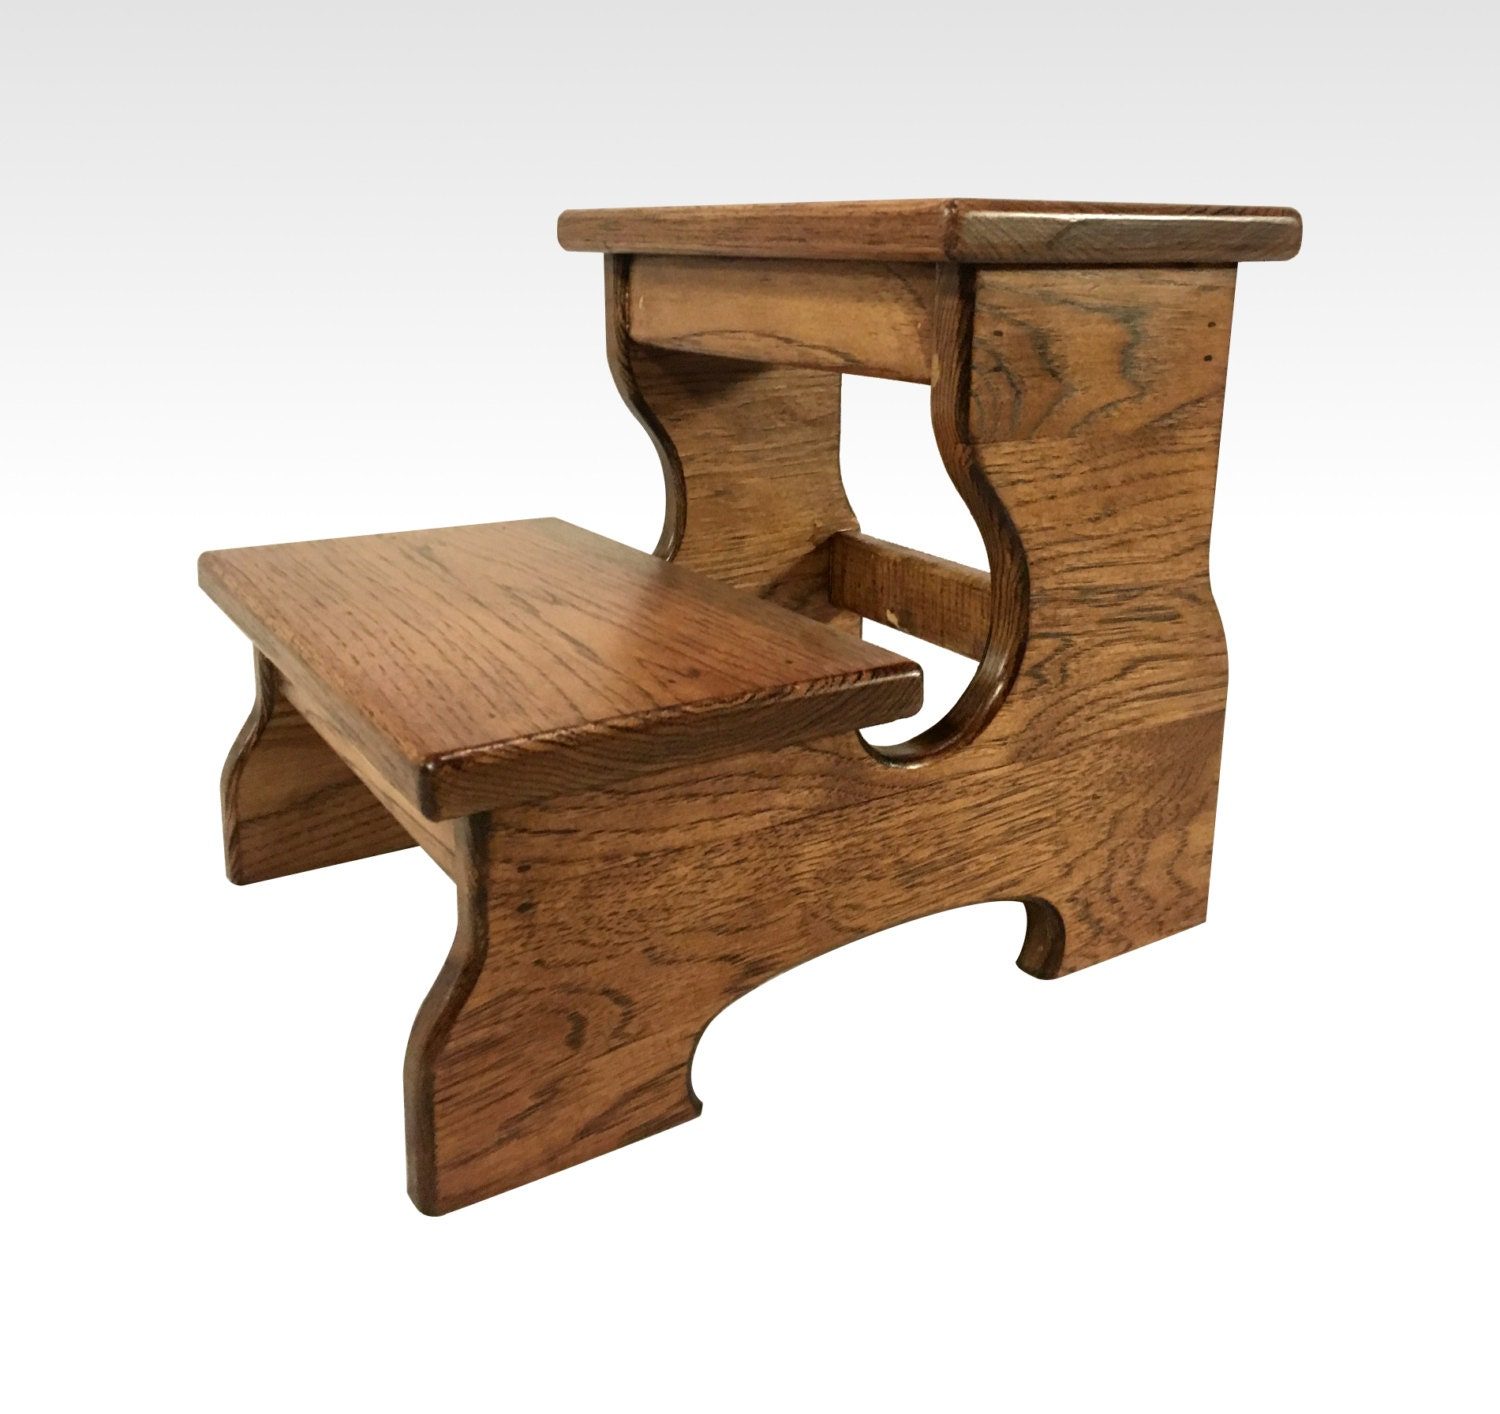 Two Step Stool By Candlewood Furniture Rustic Wood Wooden